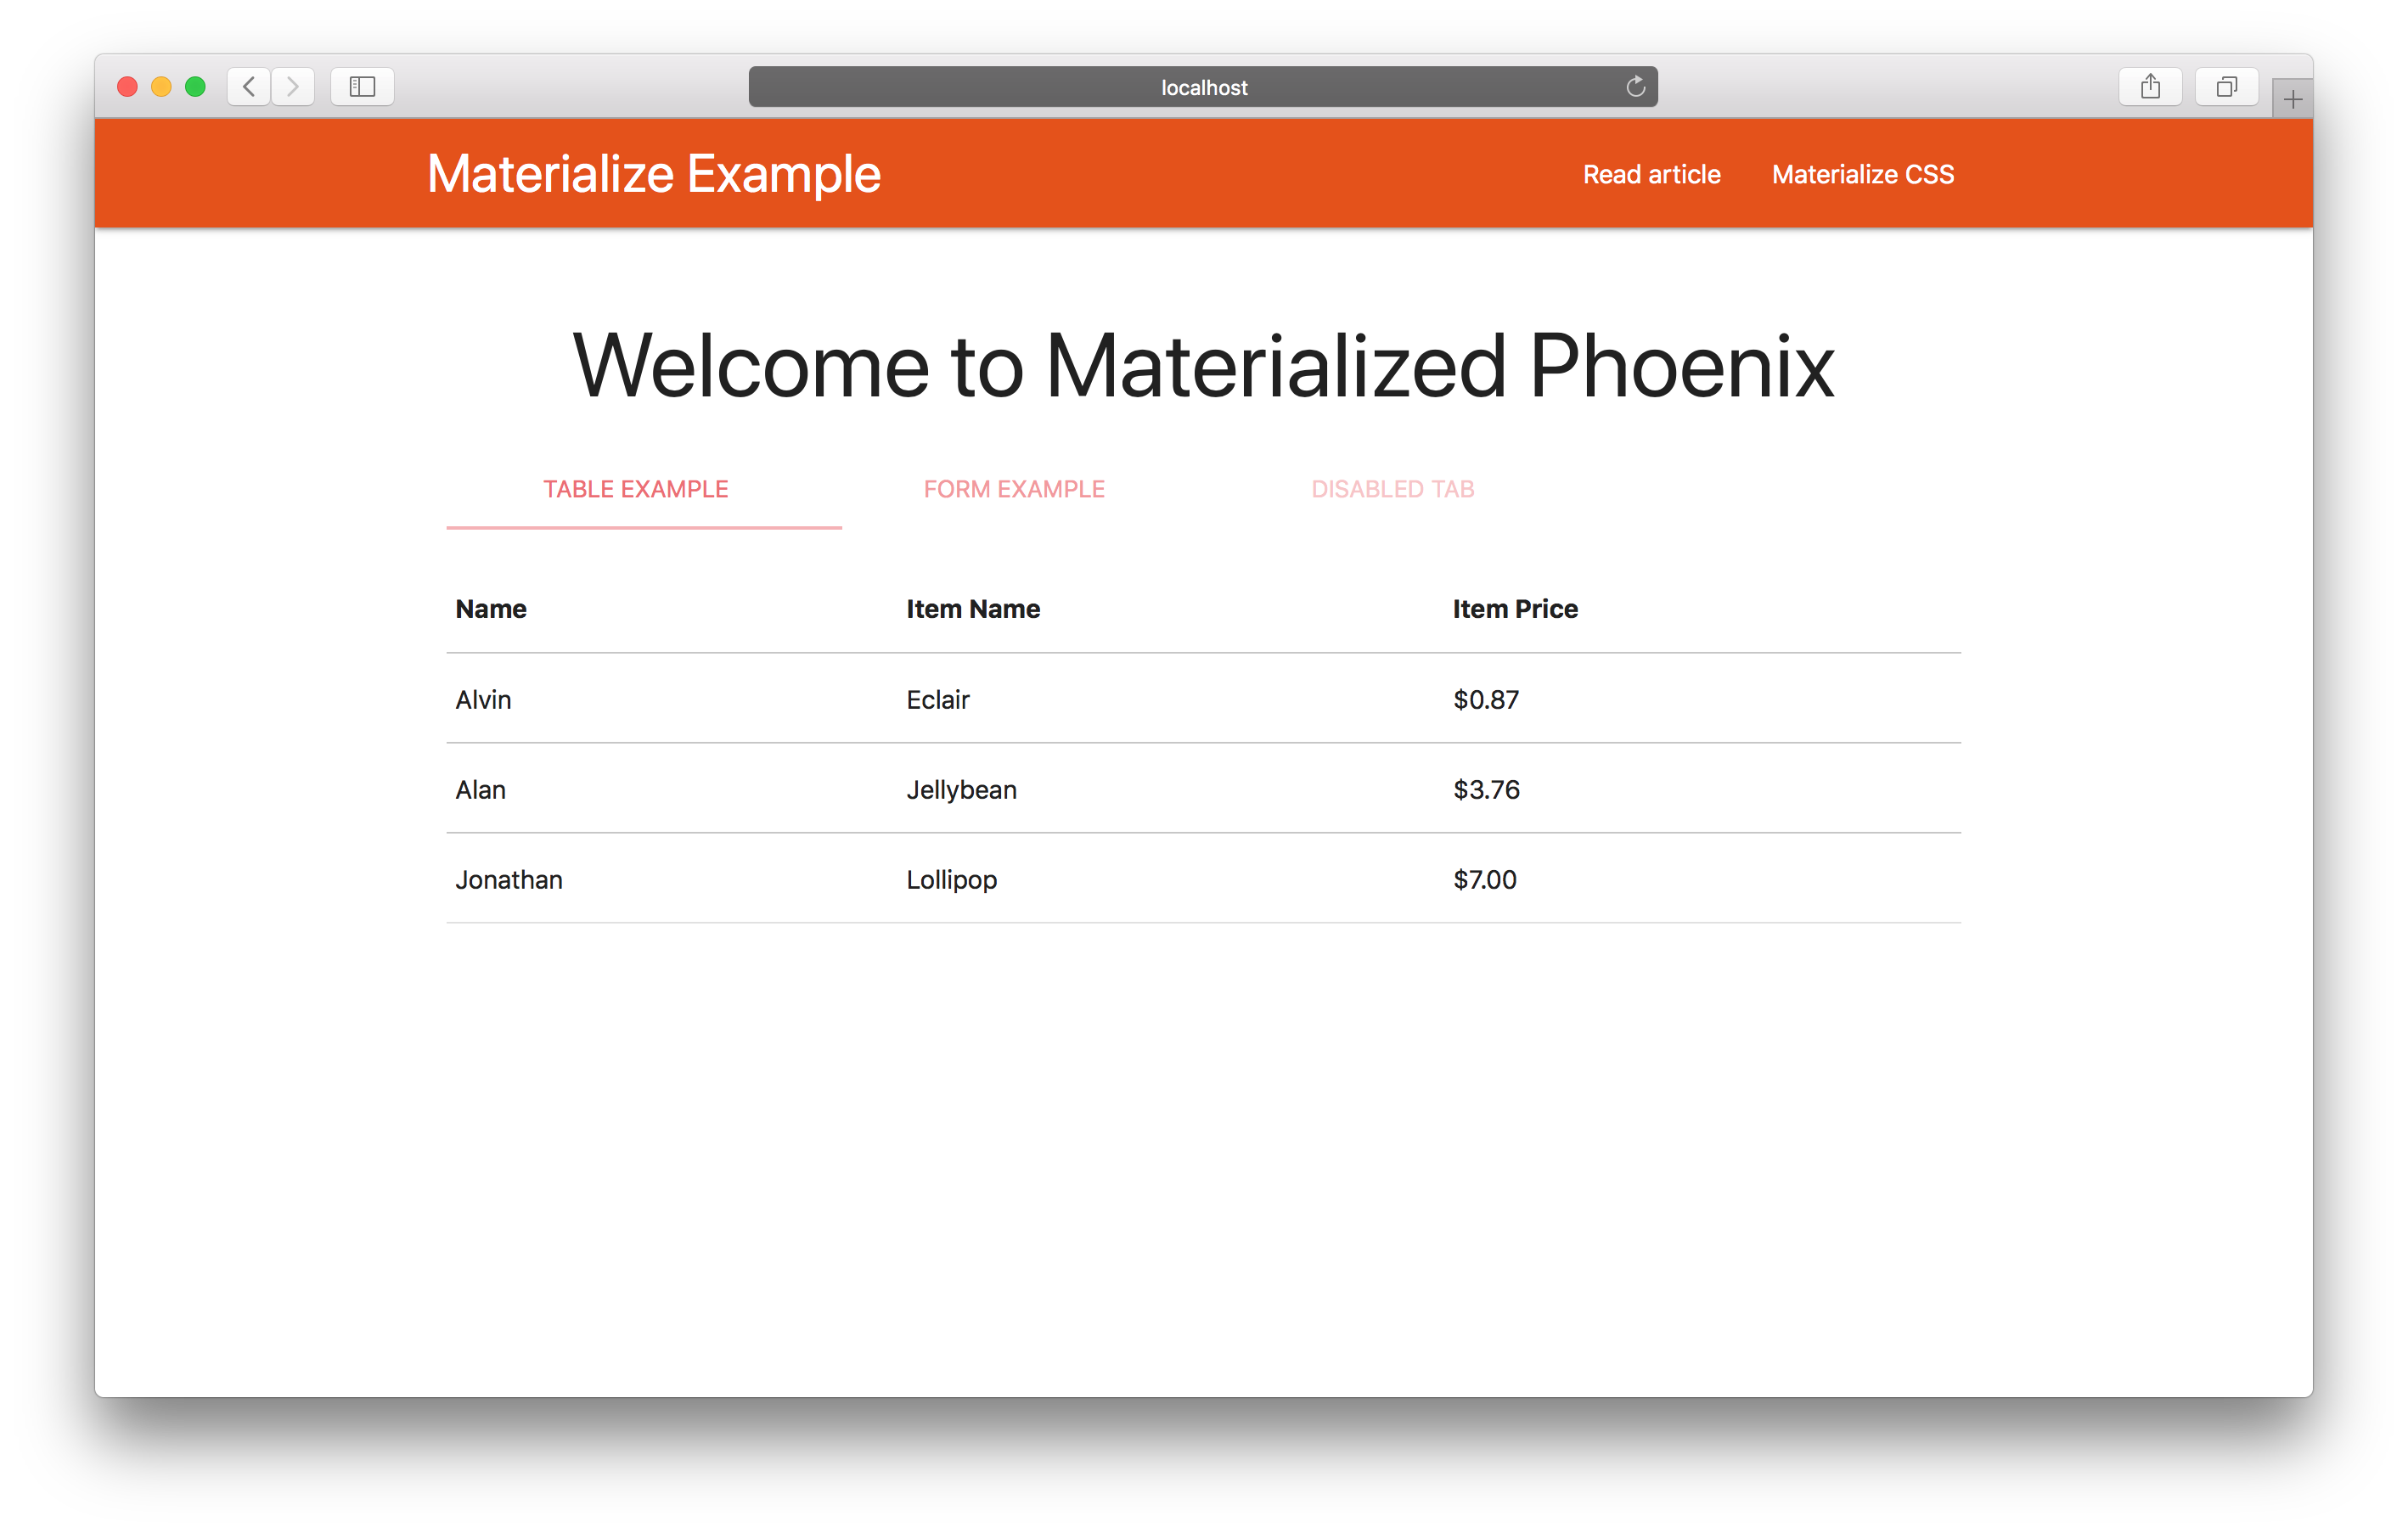 How to use Materialize CSS with Phoenix | What did I learn